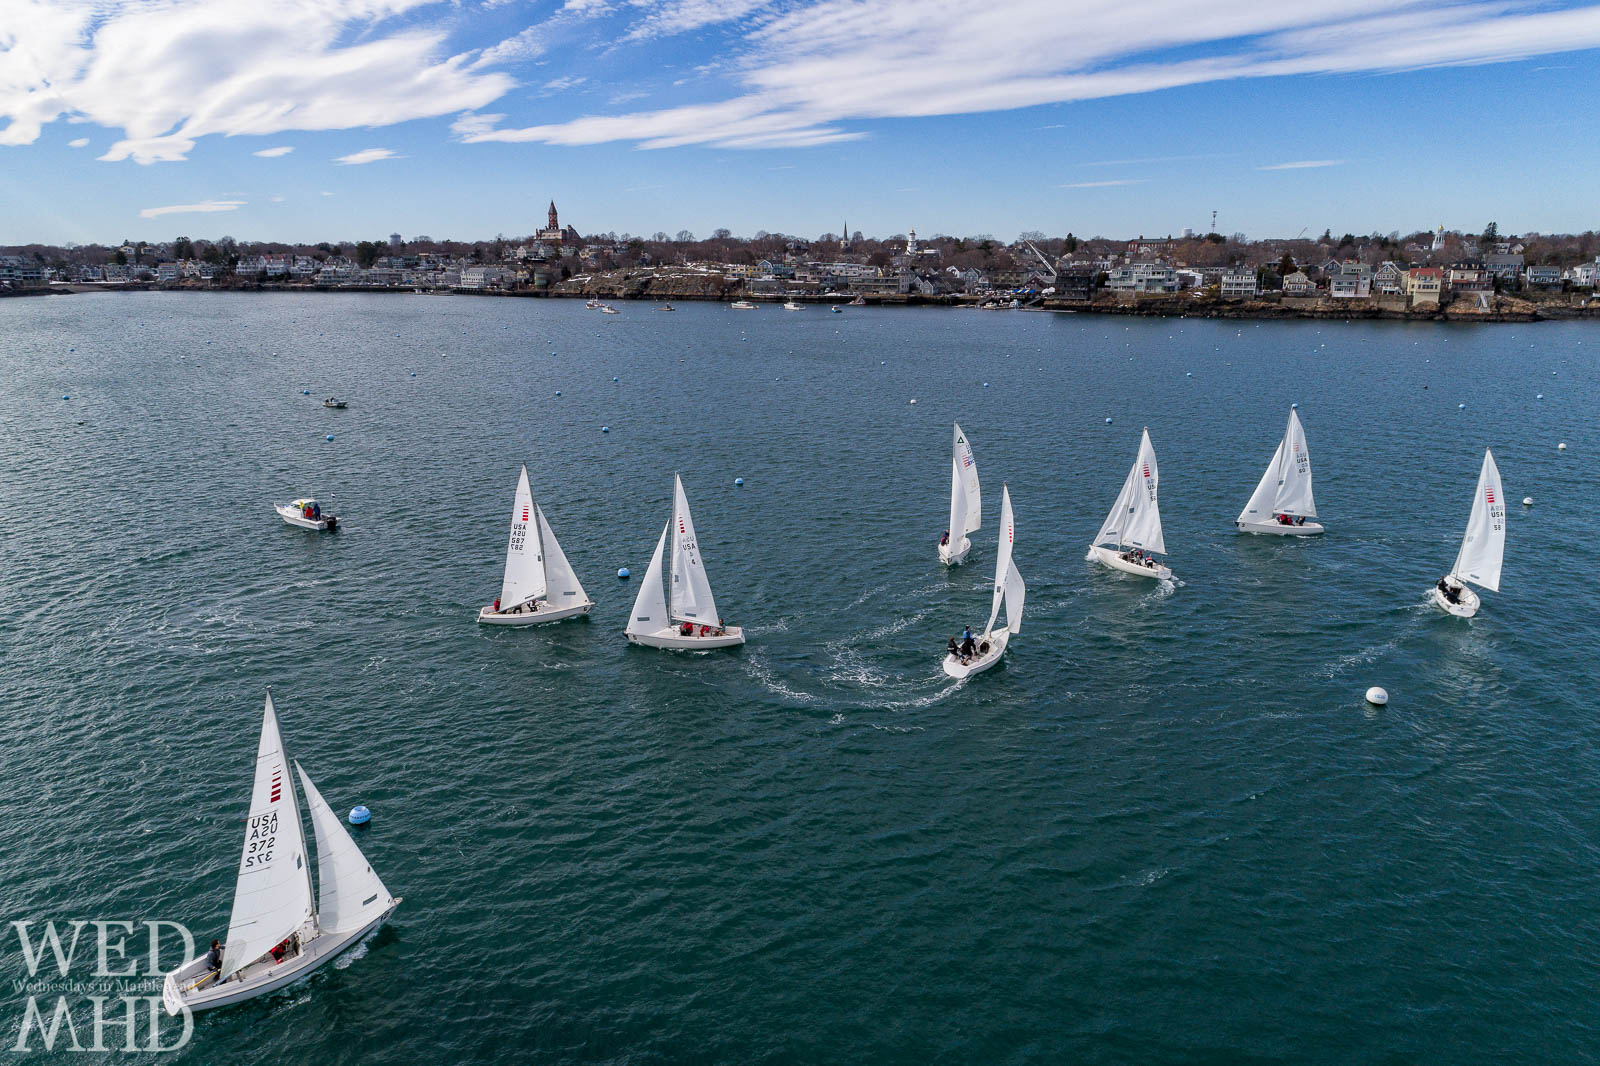 Frostbite sailing takes part under Spring like conditions on a mid-February day in Marblehead Harbor and is captured from fifty feet high by an aerial camera